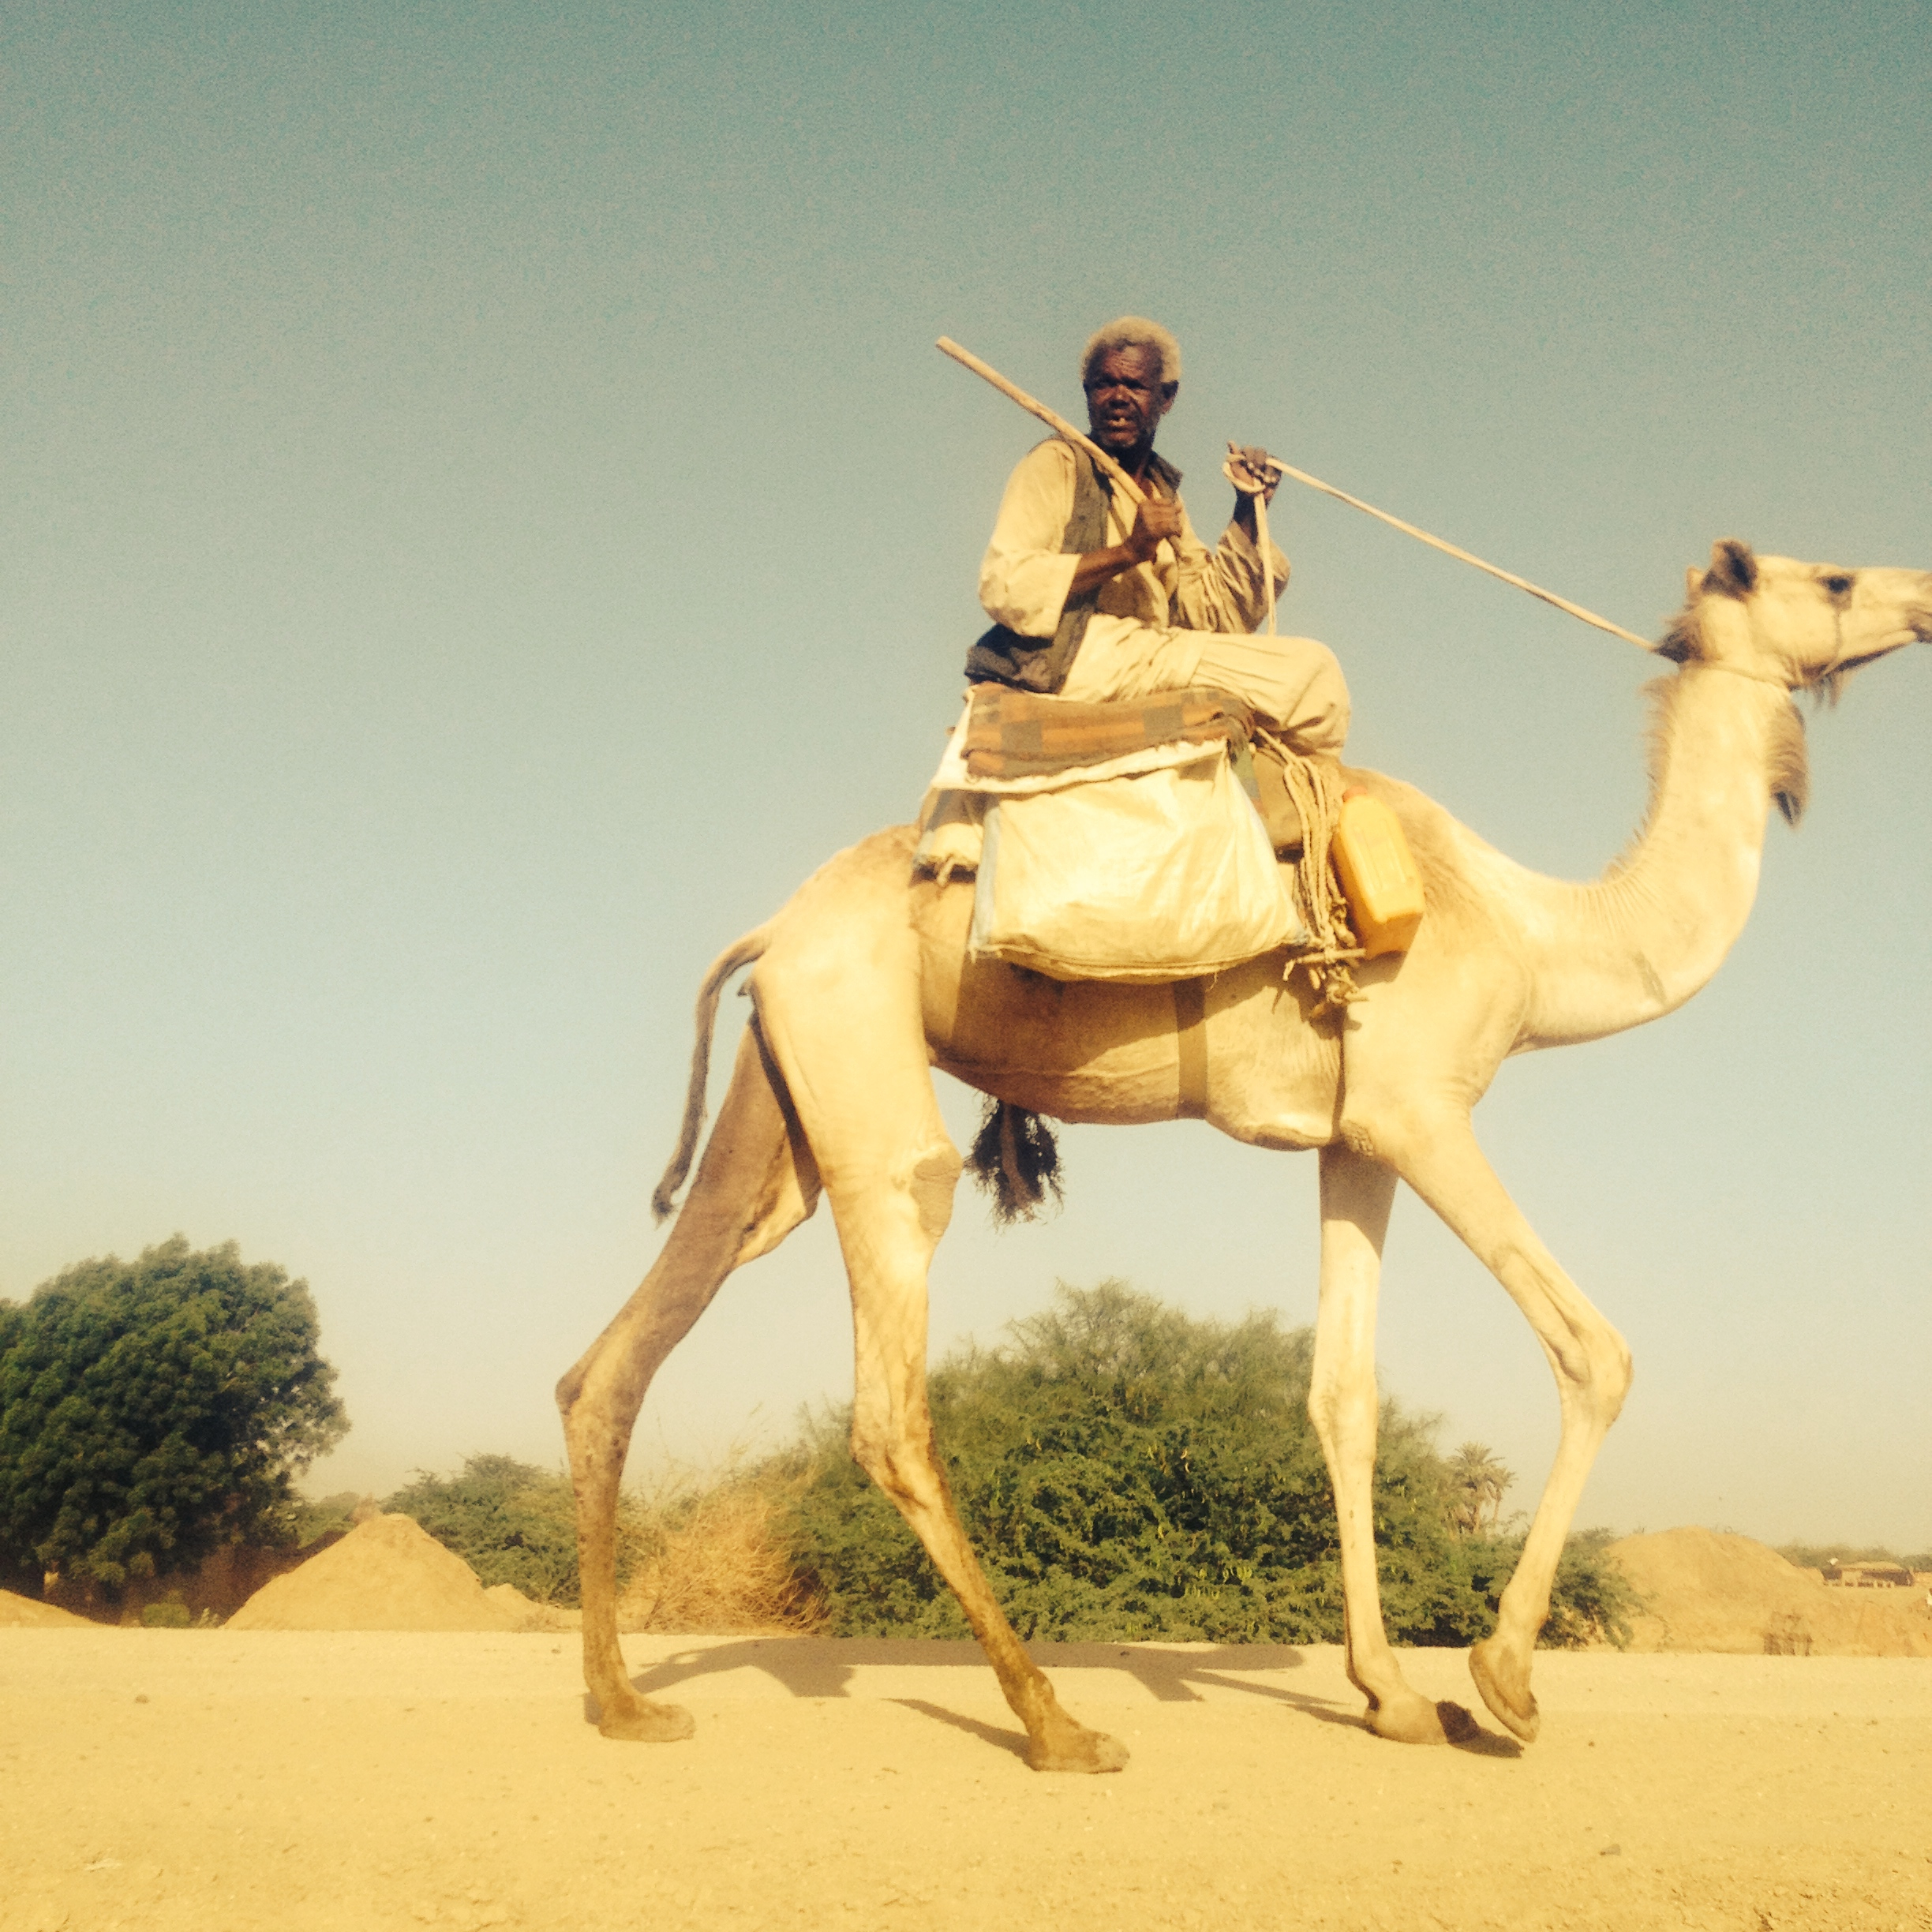 Camel herder, about 1 hour from Kassala